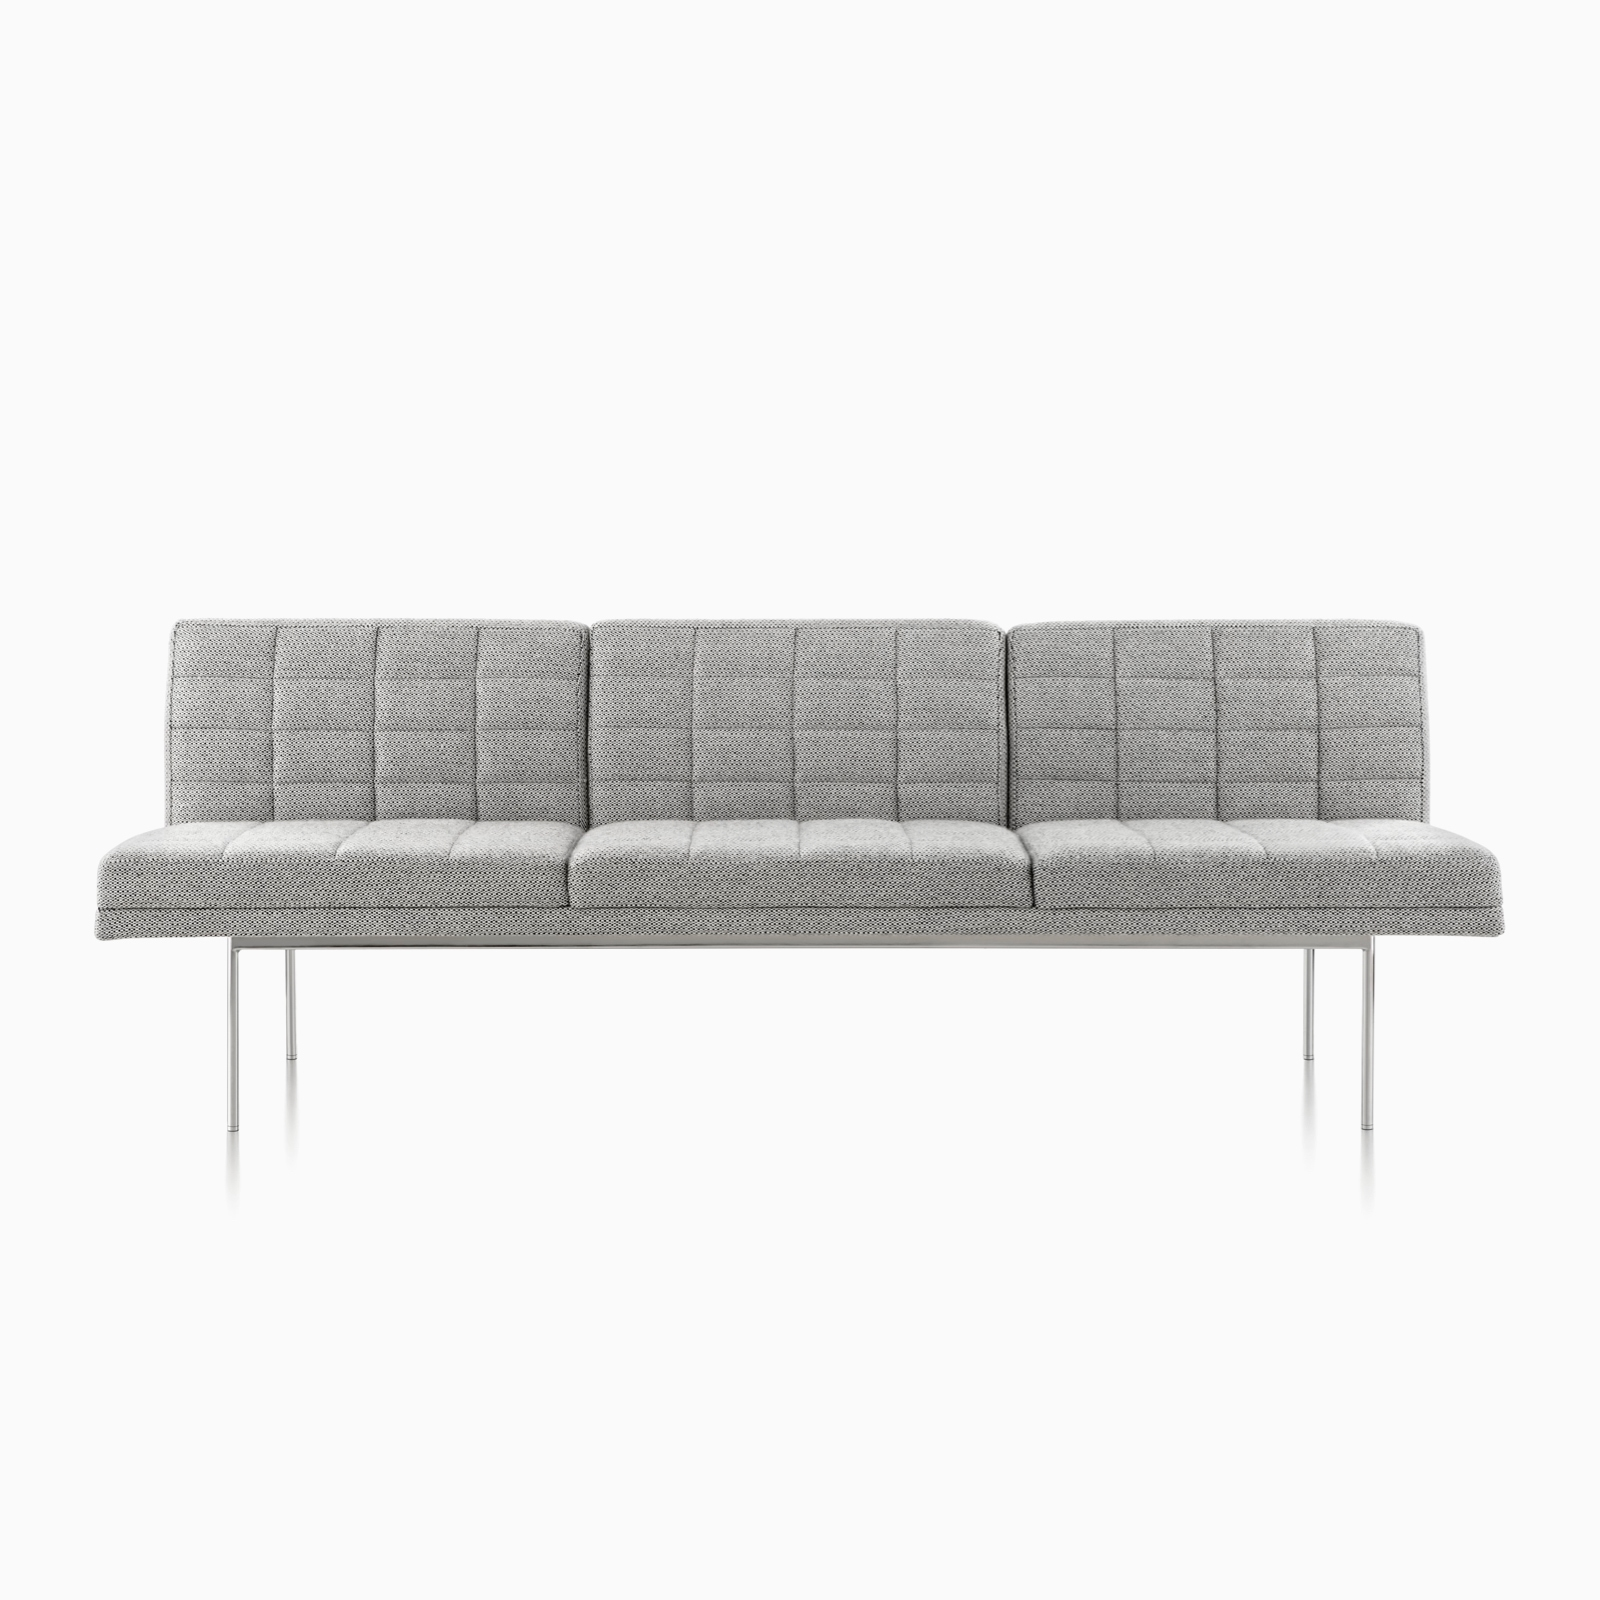 A front view of a light gray Tuxedo Sofa with silver legs.